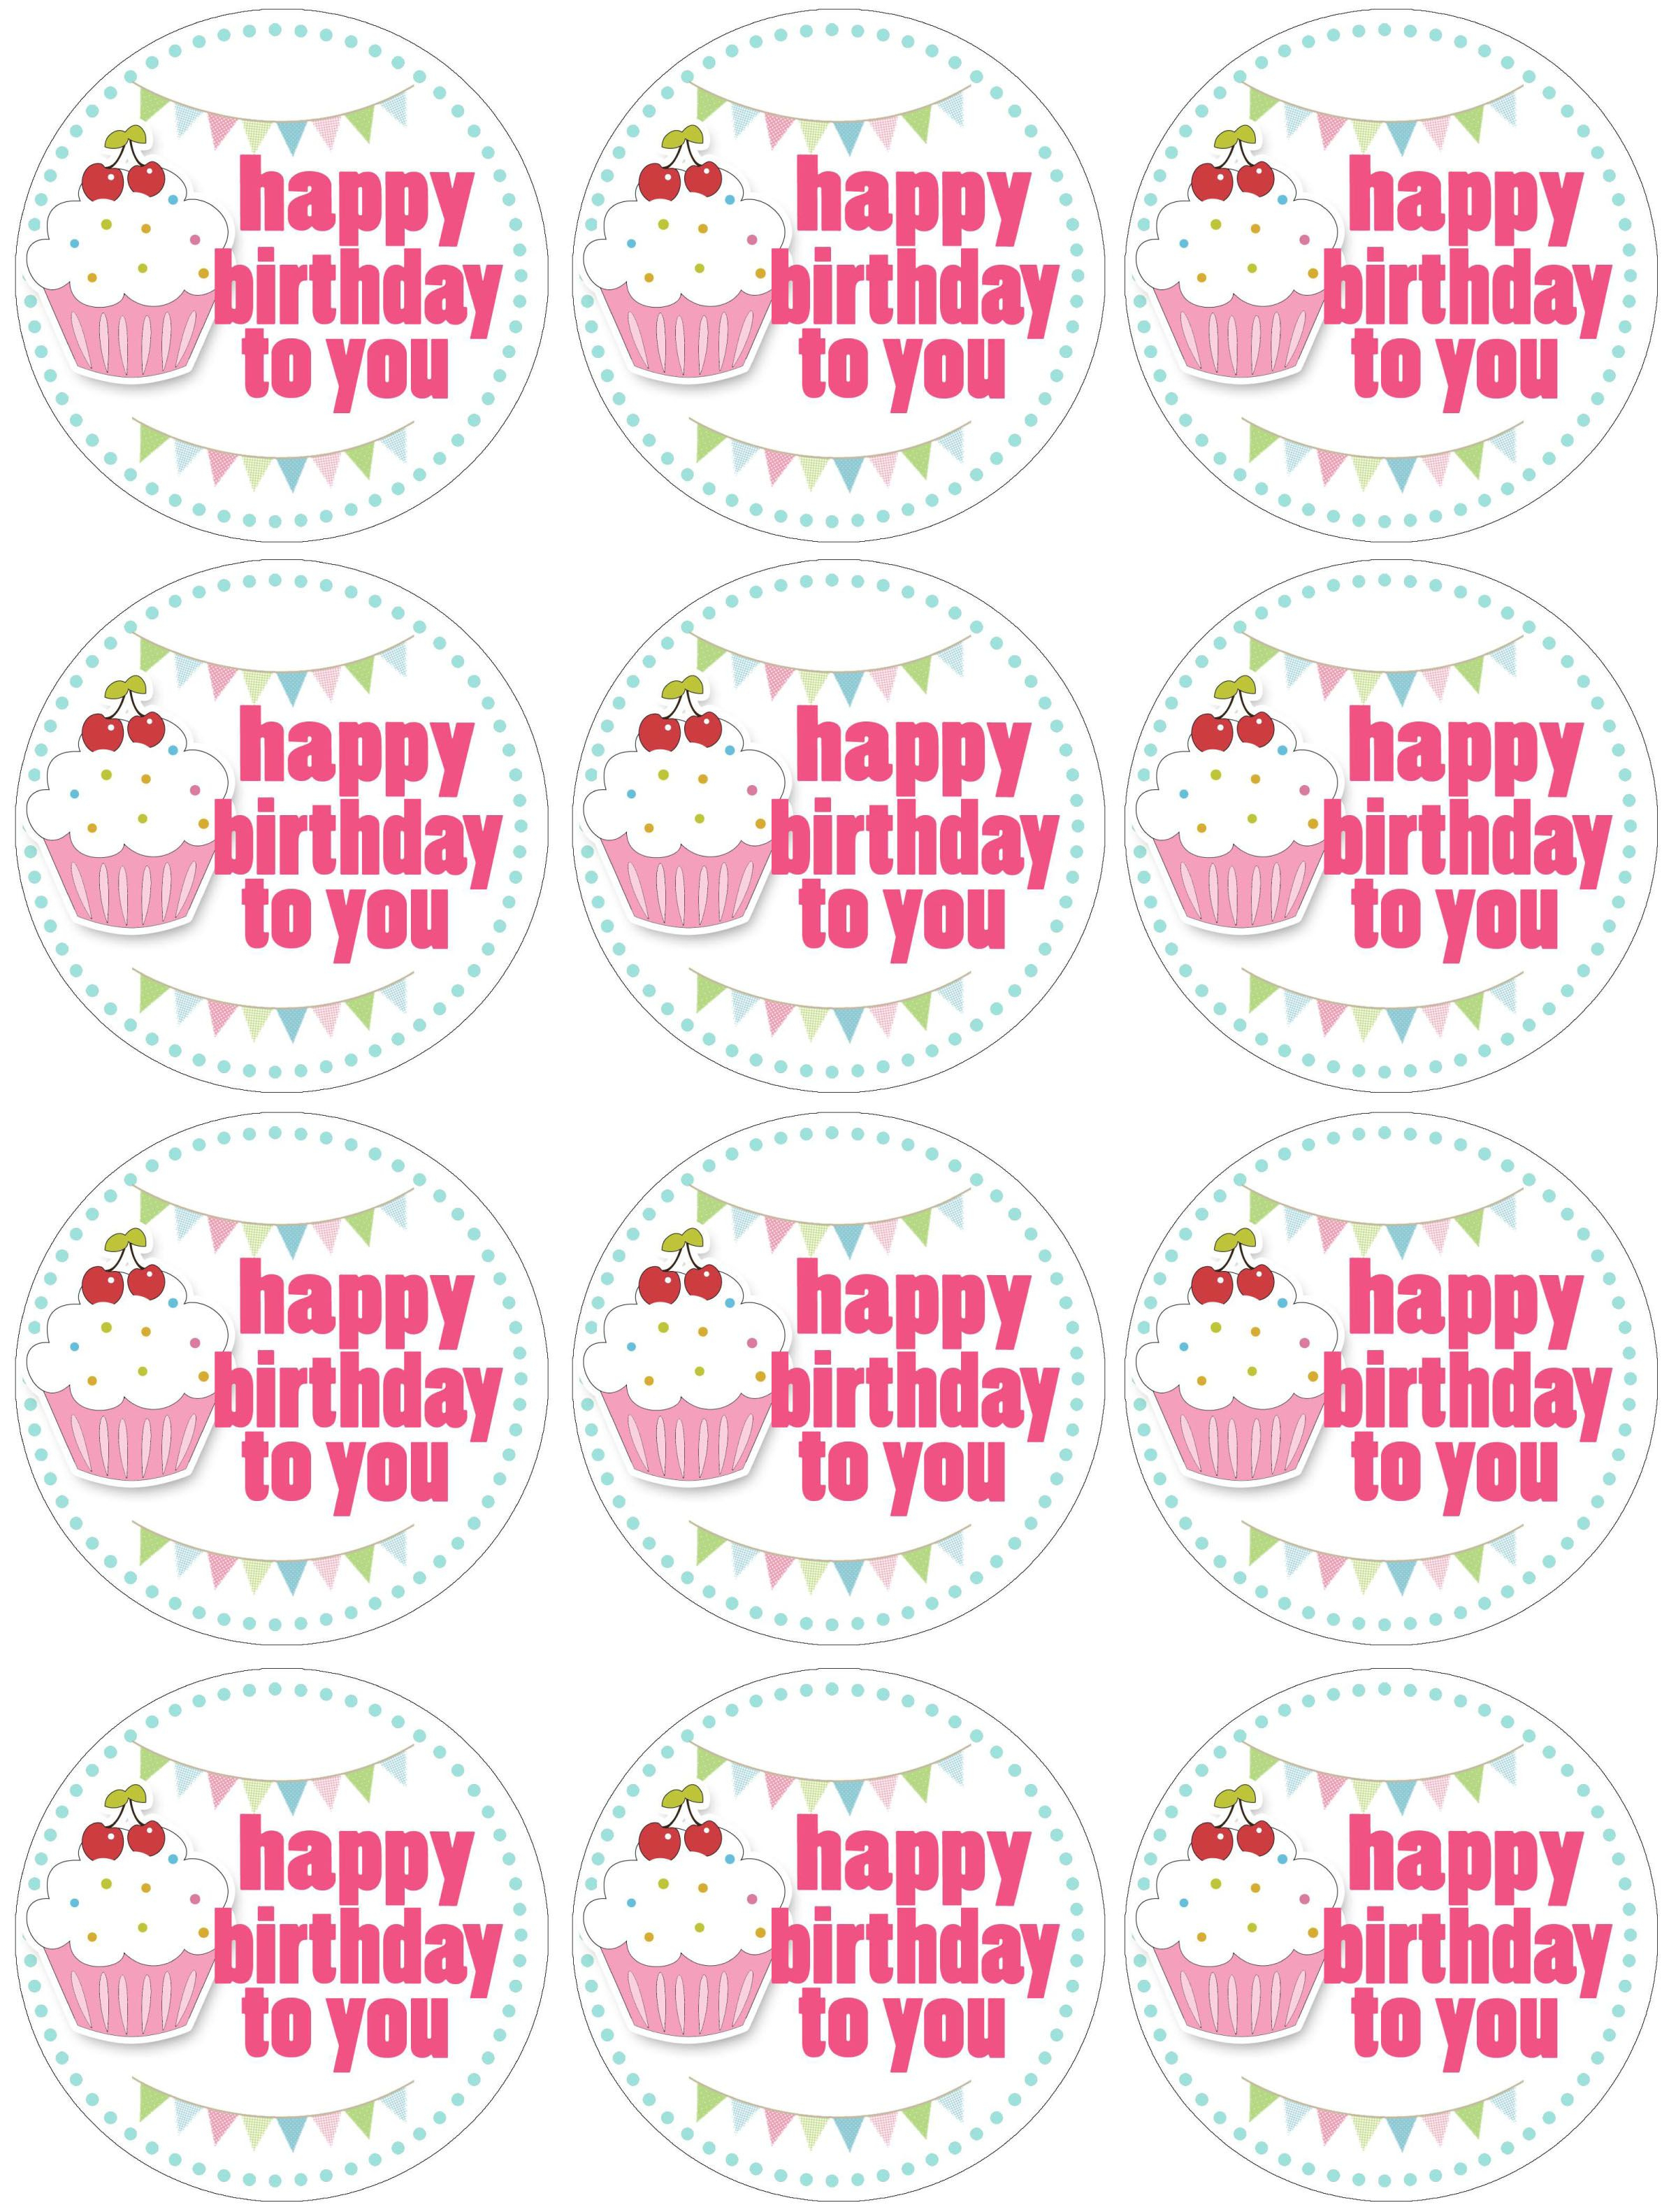 Cupcake Birthday Party With Free Printables | Free Printables - Free Printable Happy Birthday Cake Topper